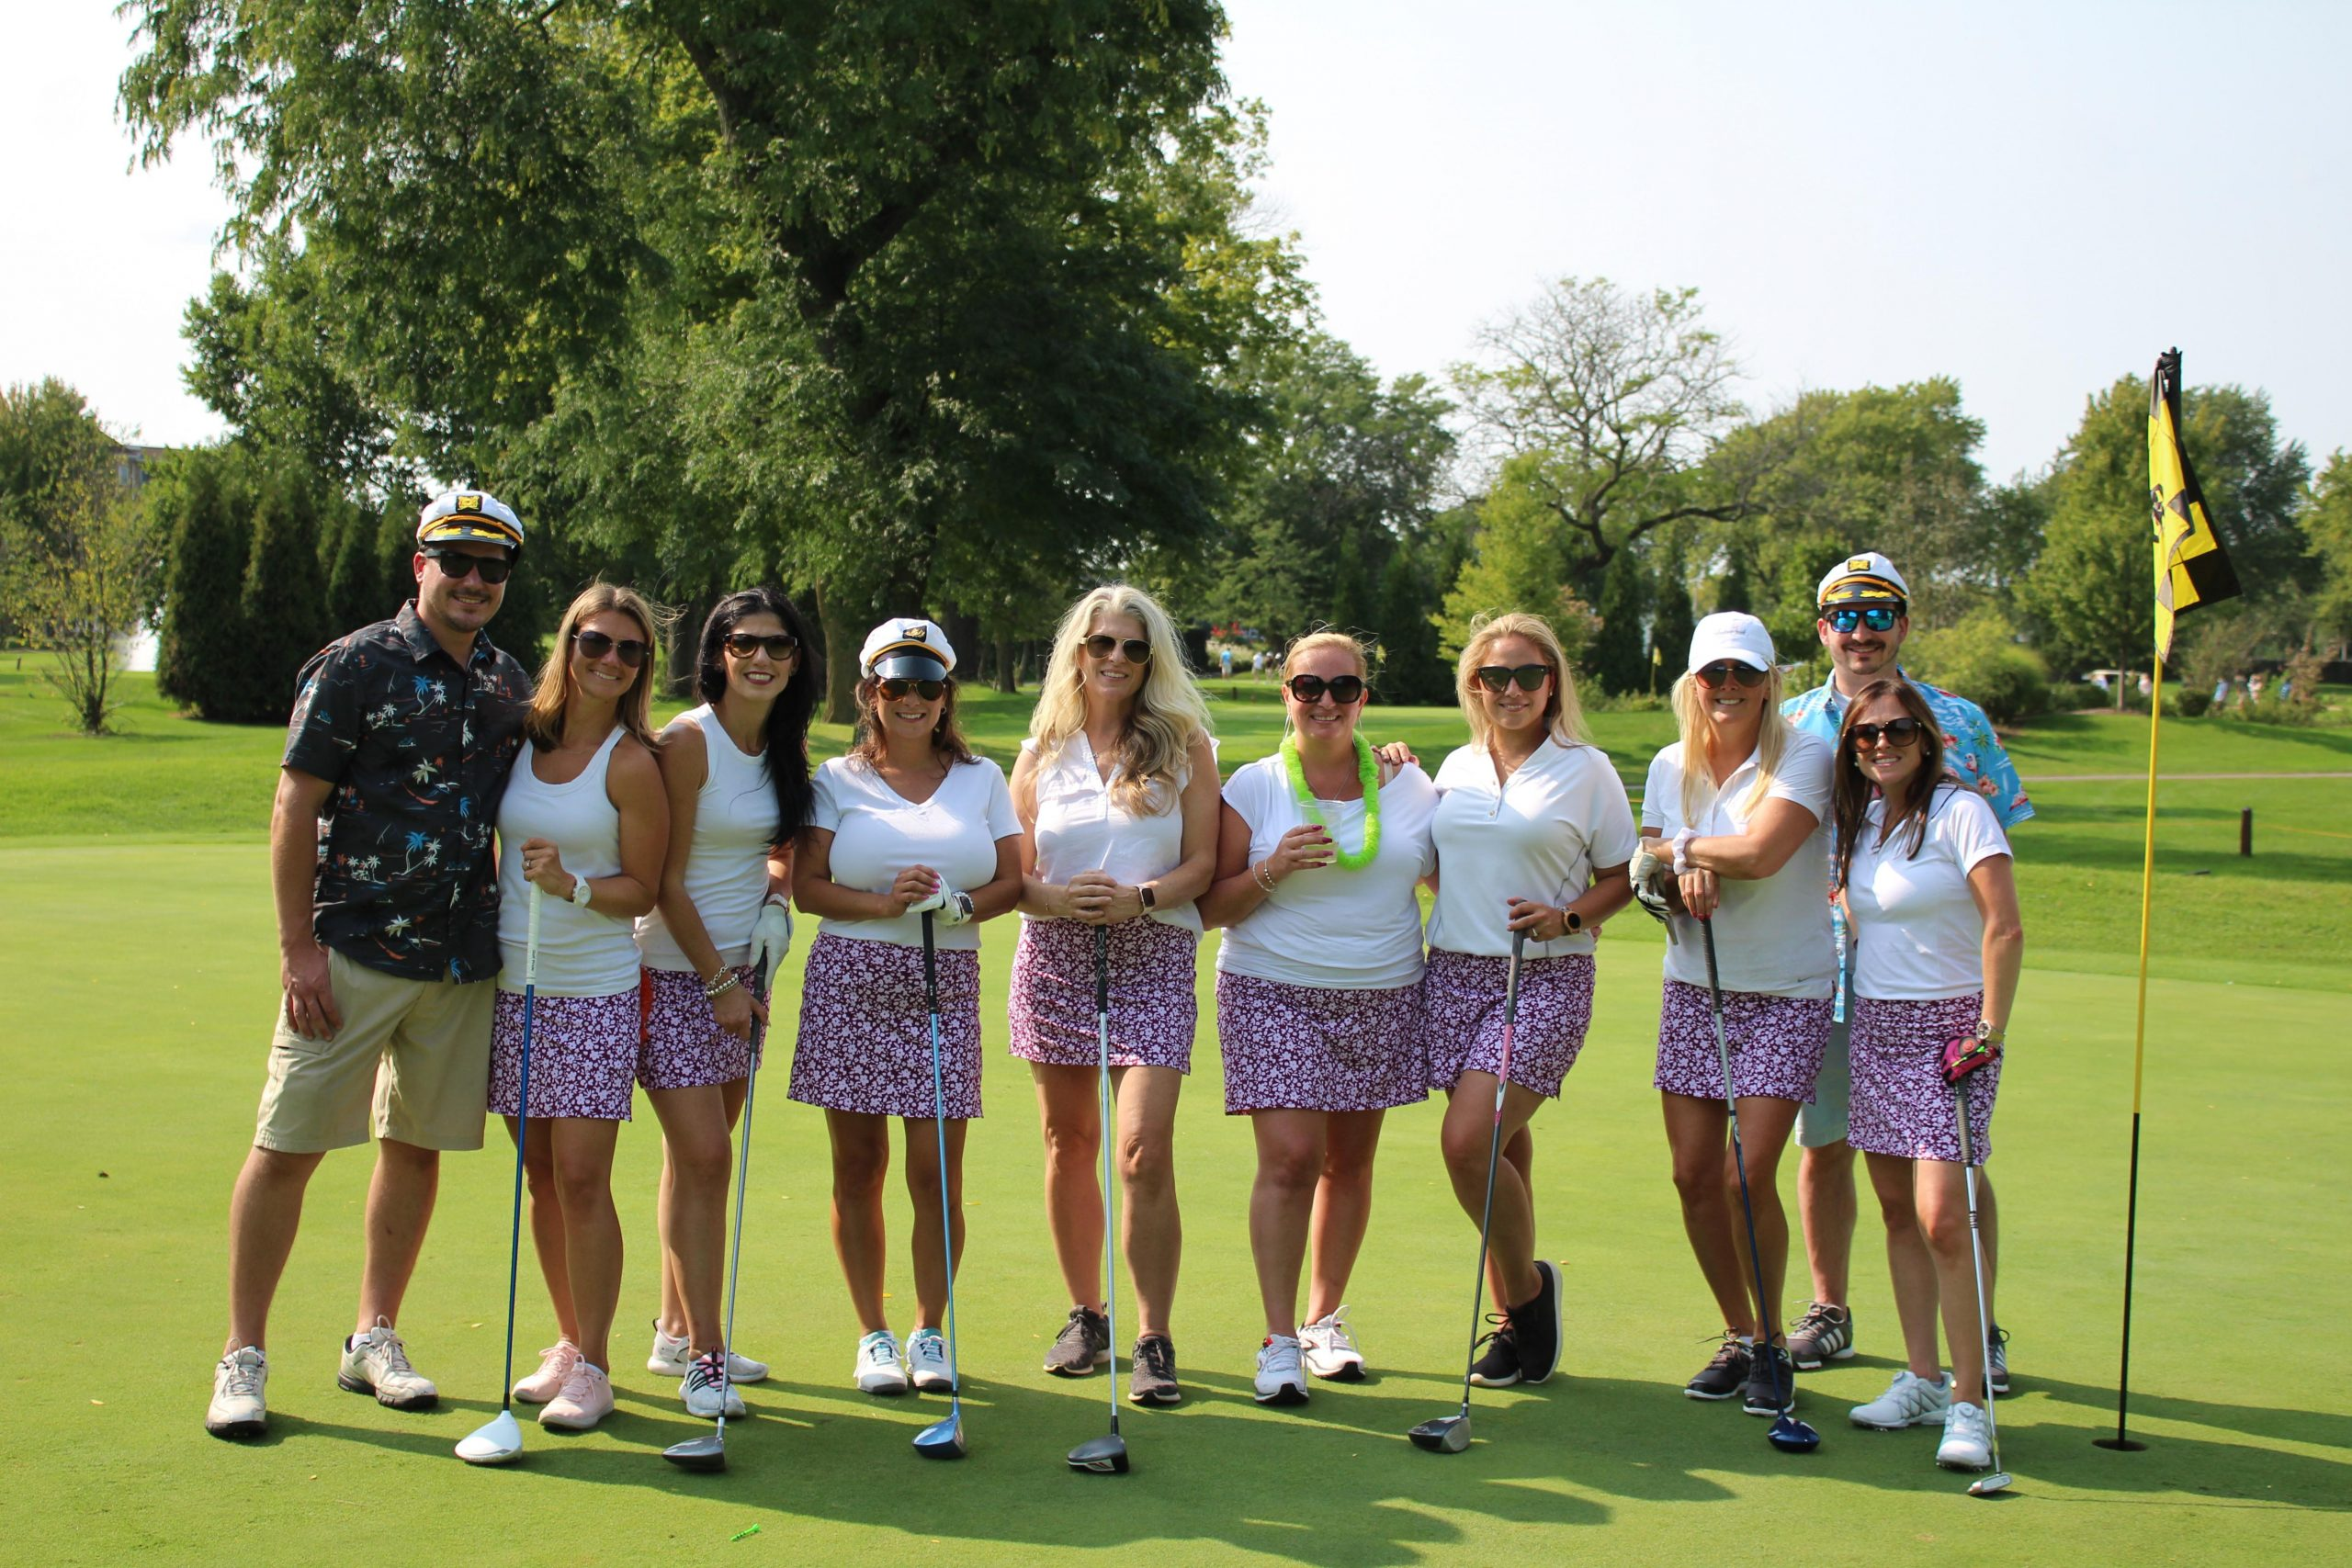 SLSF Women's Golf Outing 2021